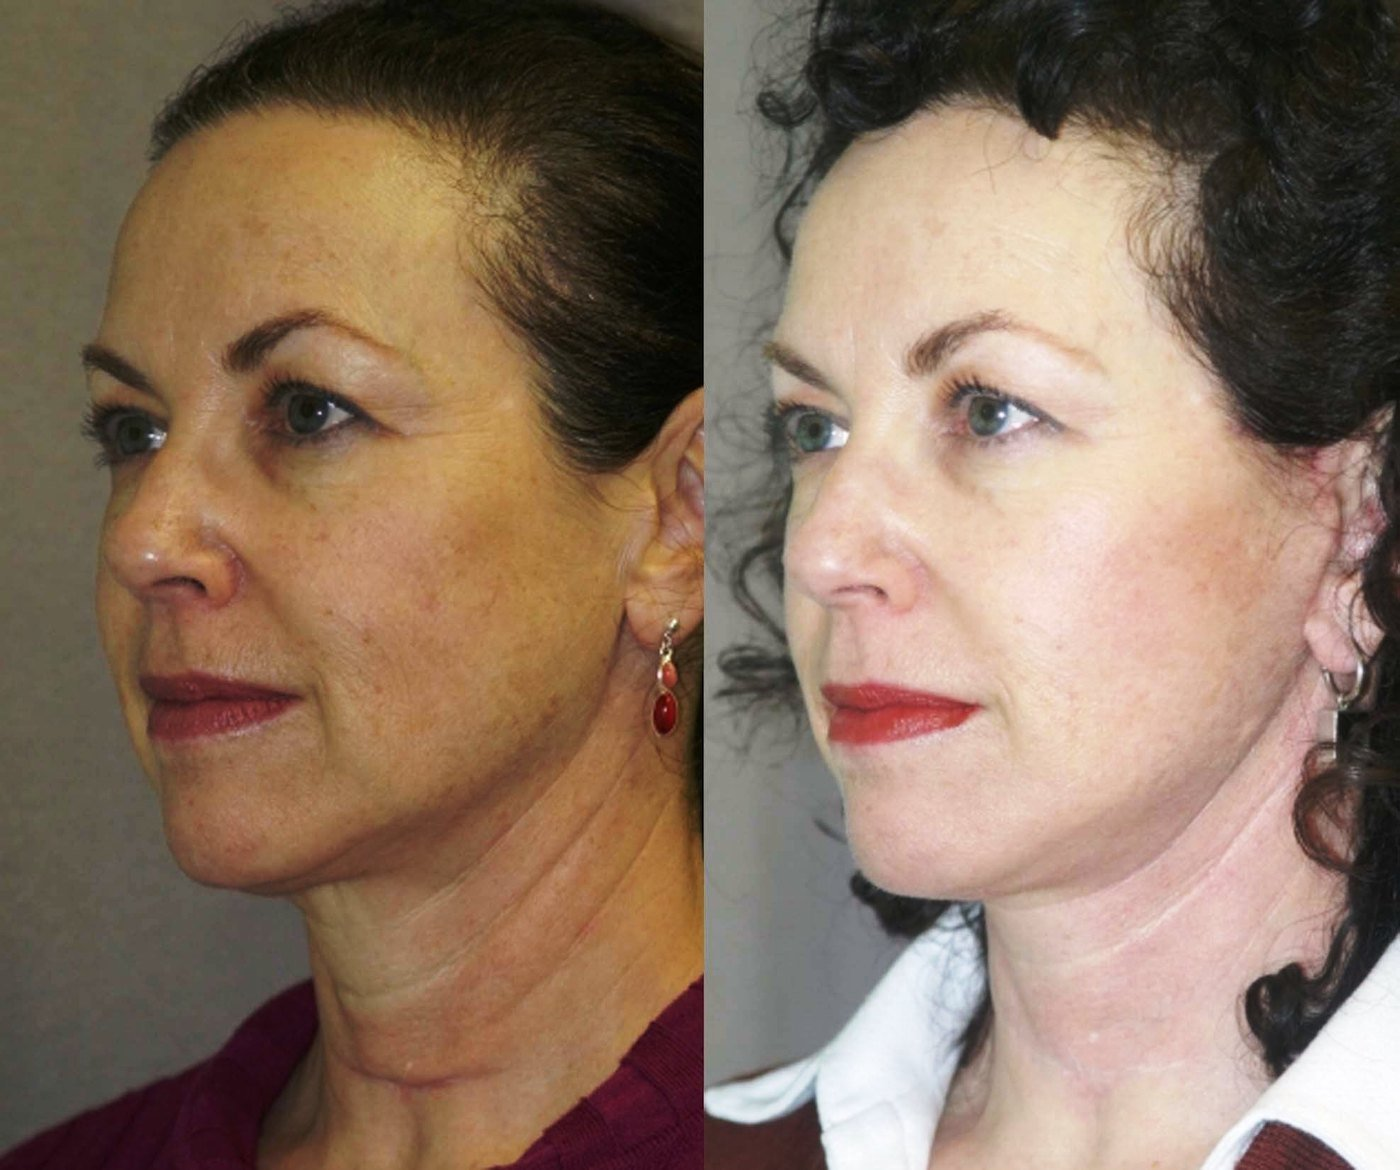 Short scar facelift with correction of thyroidectomy scar in lower neck, oblique view